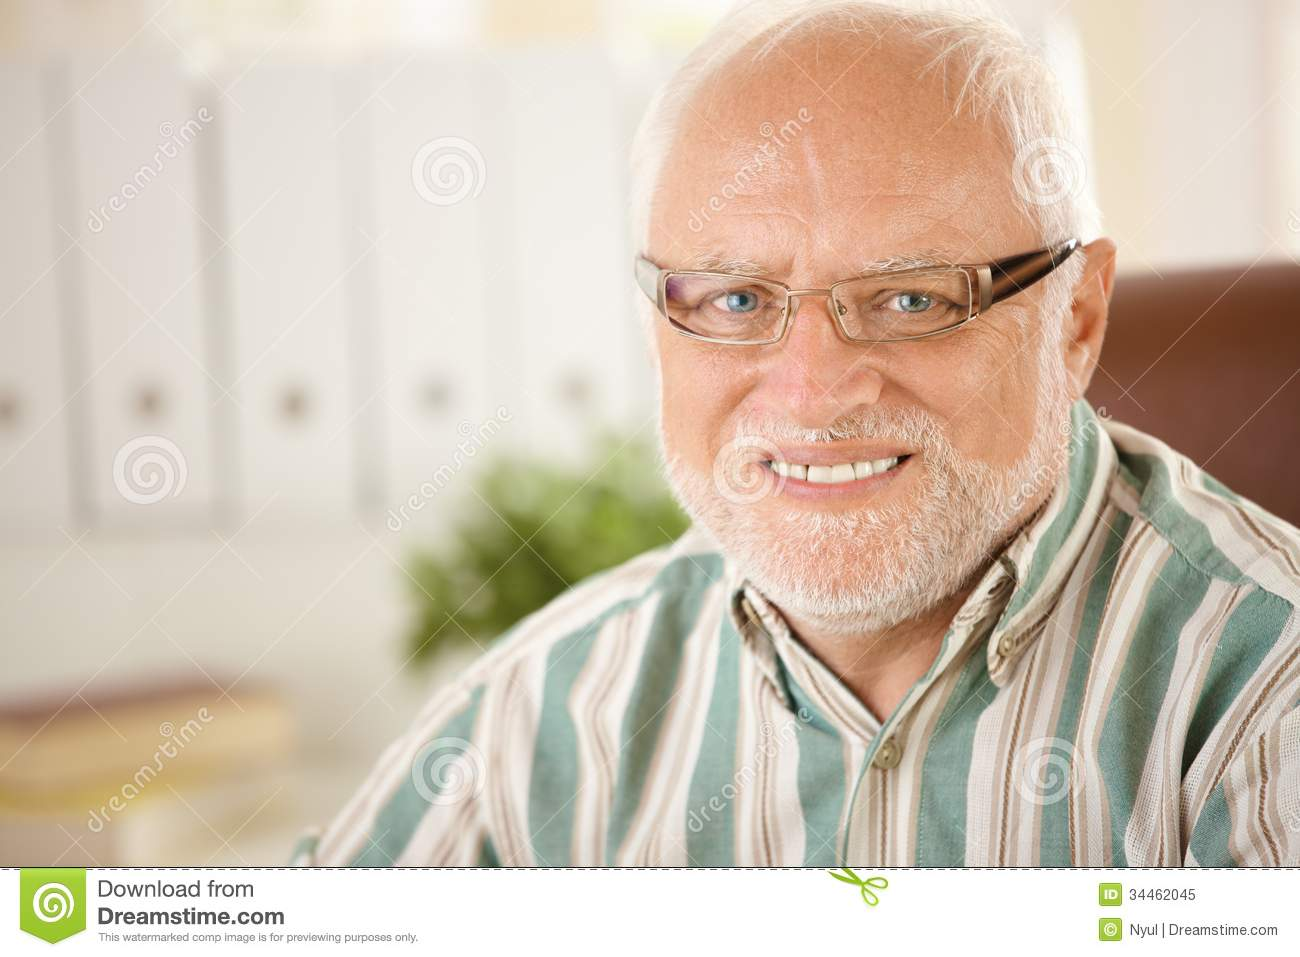 Stockphoto Portrait of elderly man